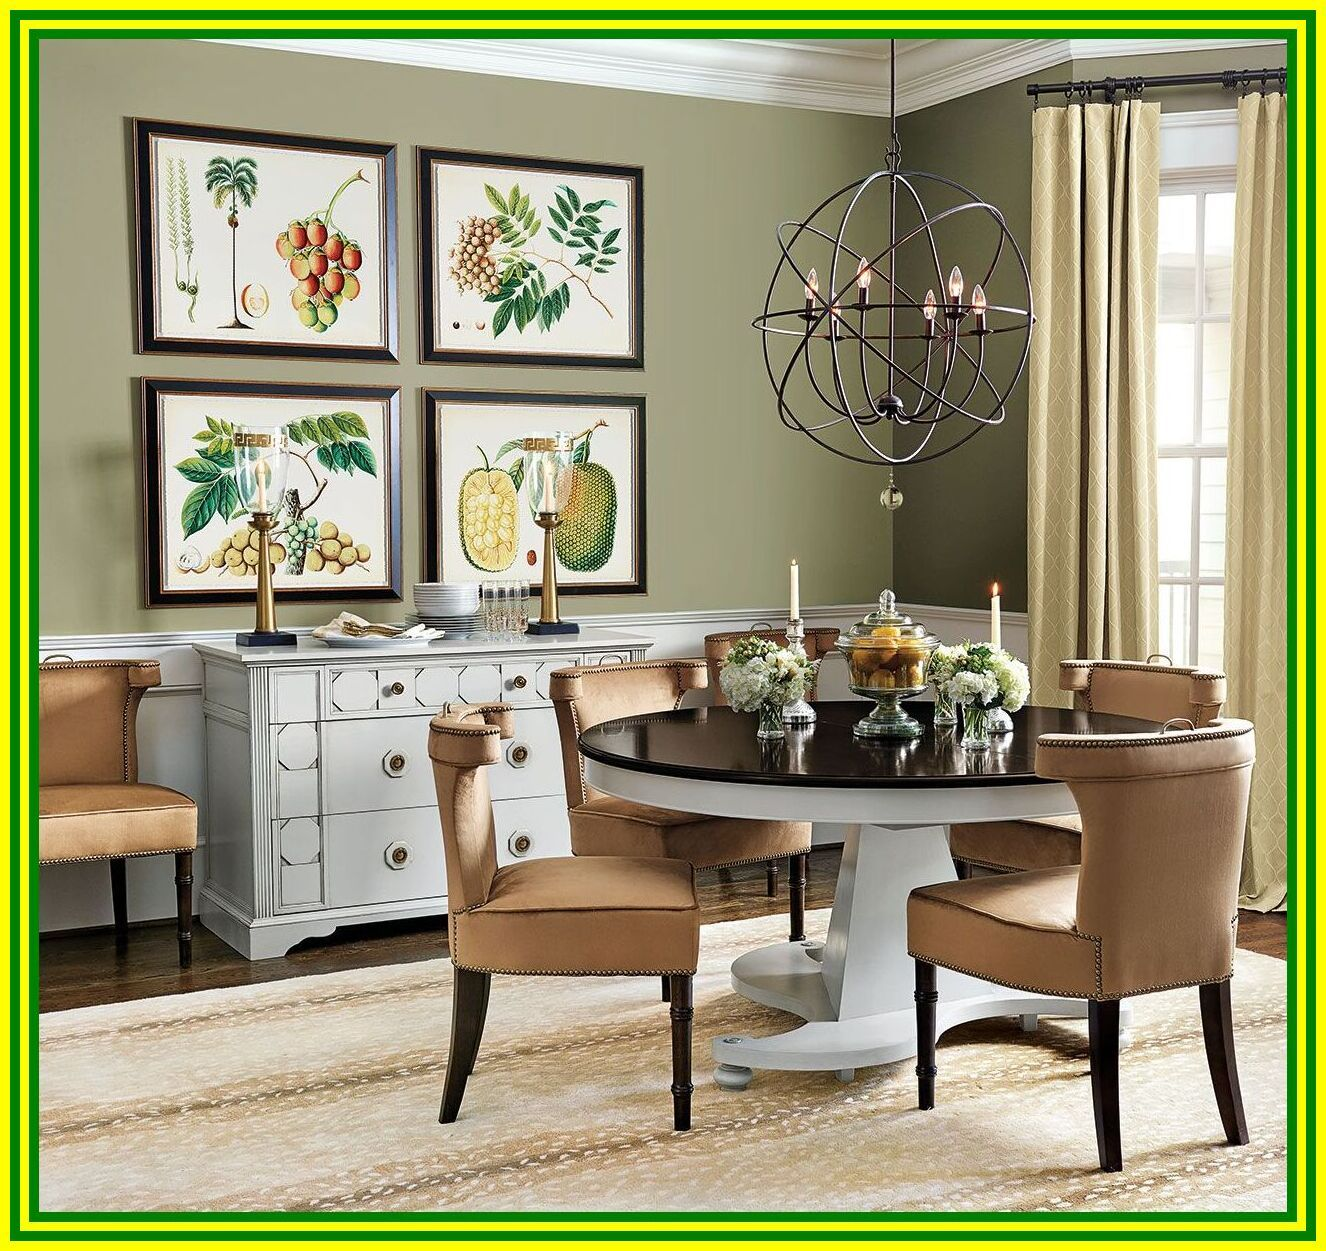 106 Reference Of Green Kitchen Chairs Green Dining Room Dining Room Wall Color Green Walls Living Room